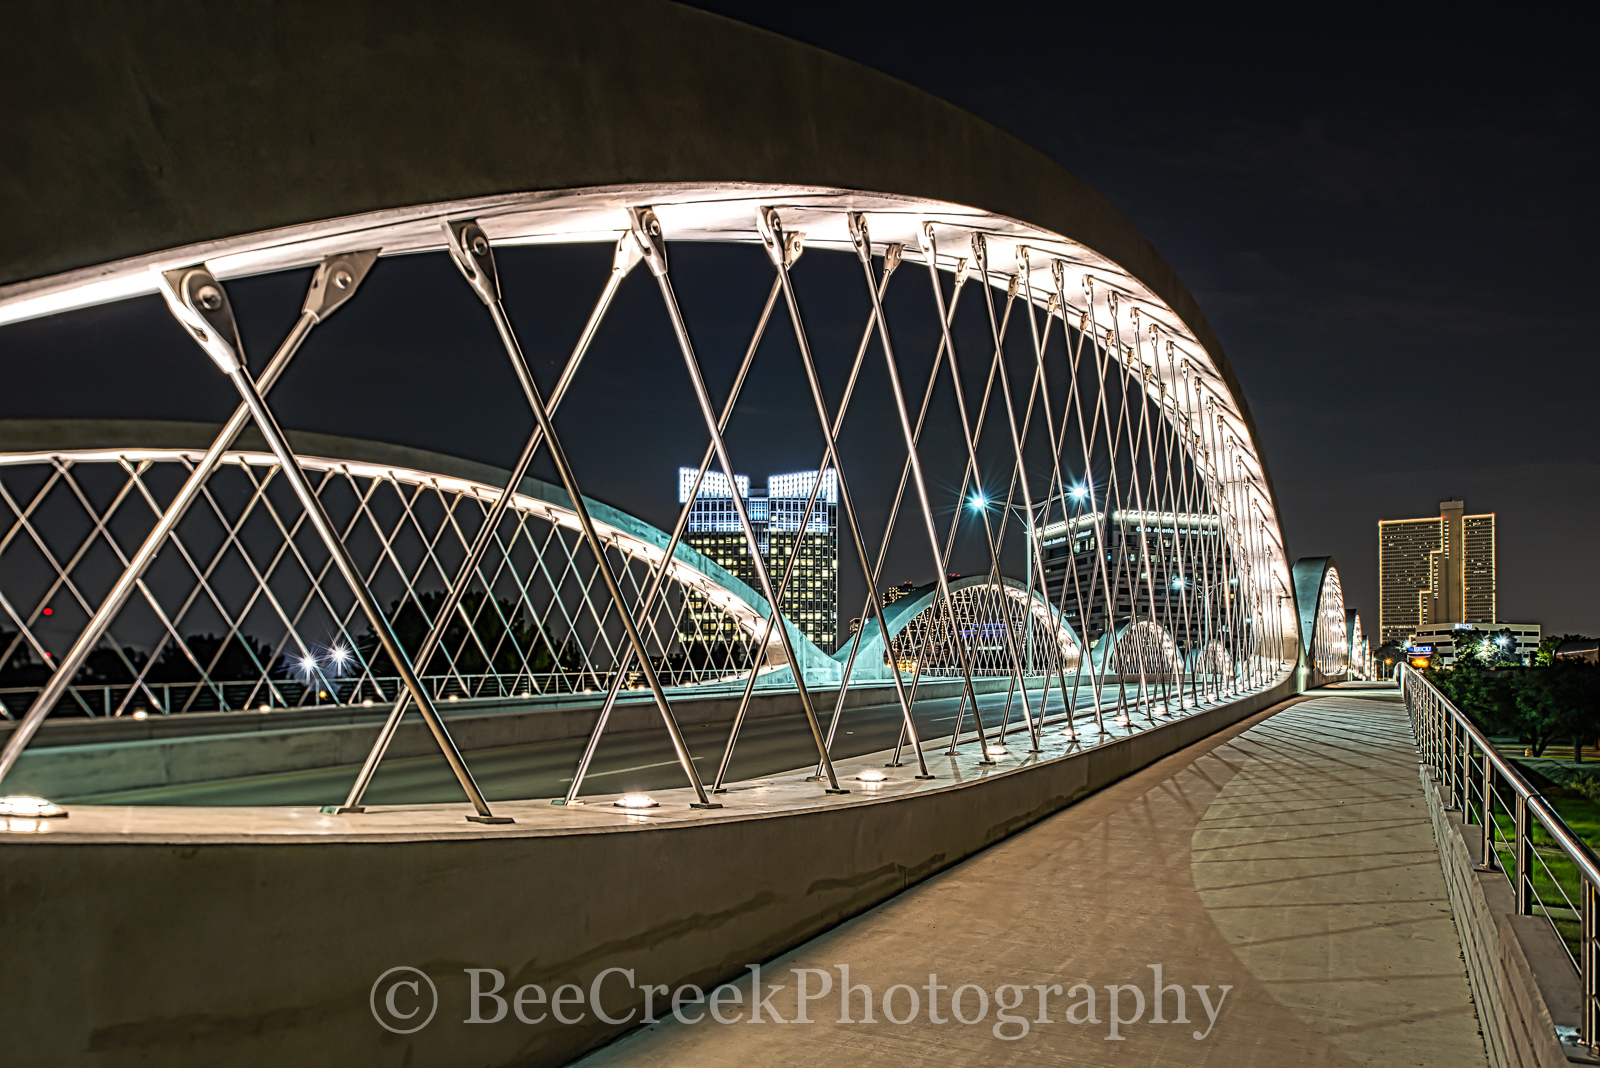 Fort Worth Seventh Street Bridge, Fort Worth, Seventh street bridge, 7th street bridge, architect, architectural, city, cityscape, cityscapes, downtown, modern, night, skyline, skylines, urban, photo